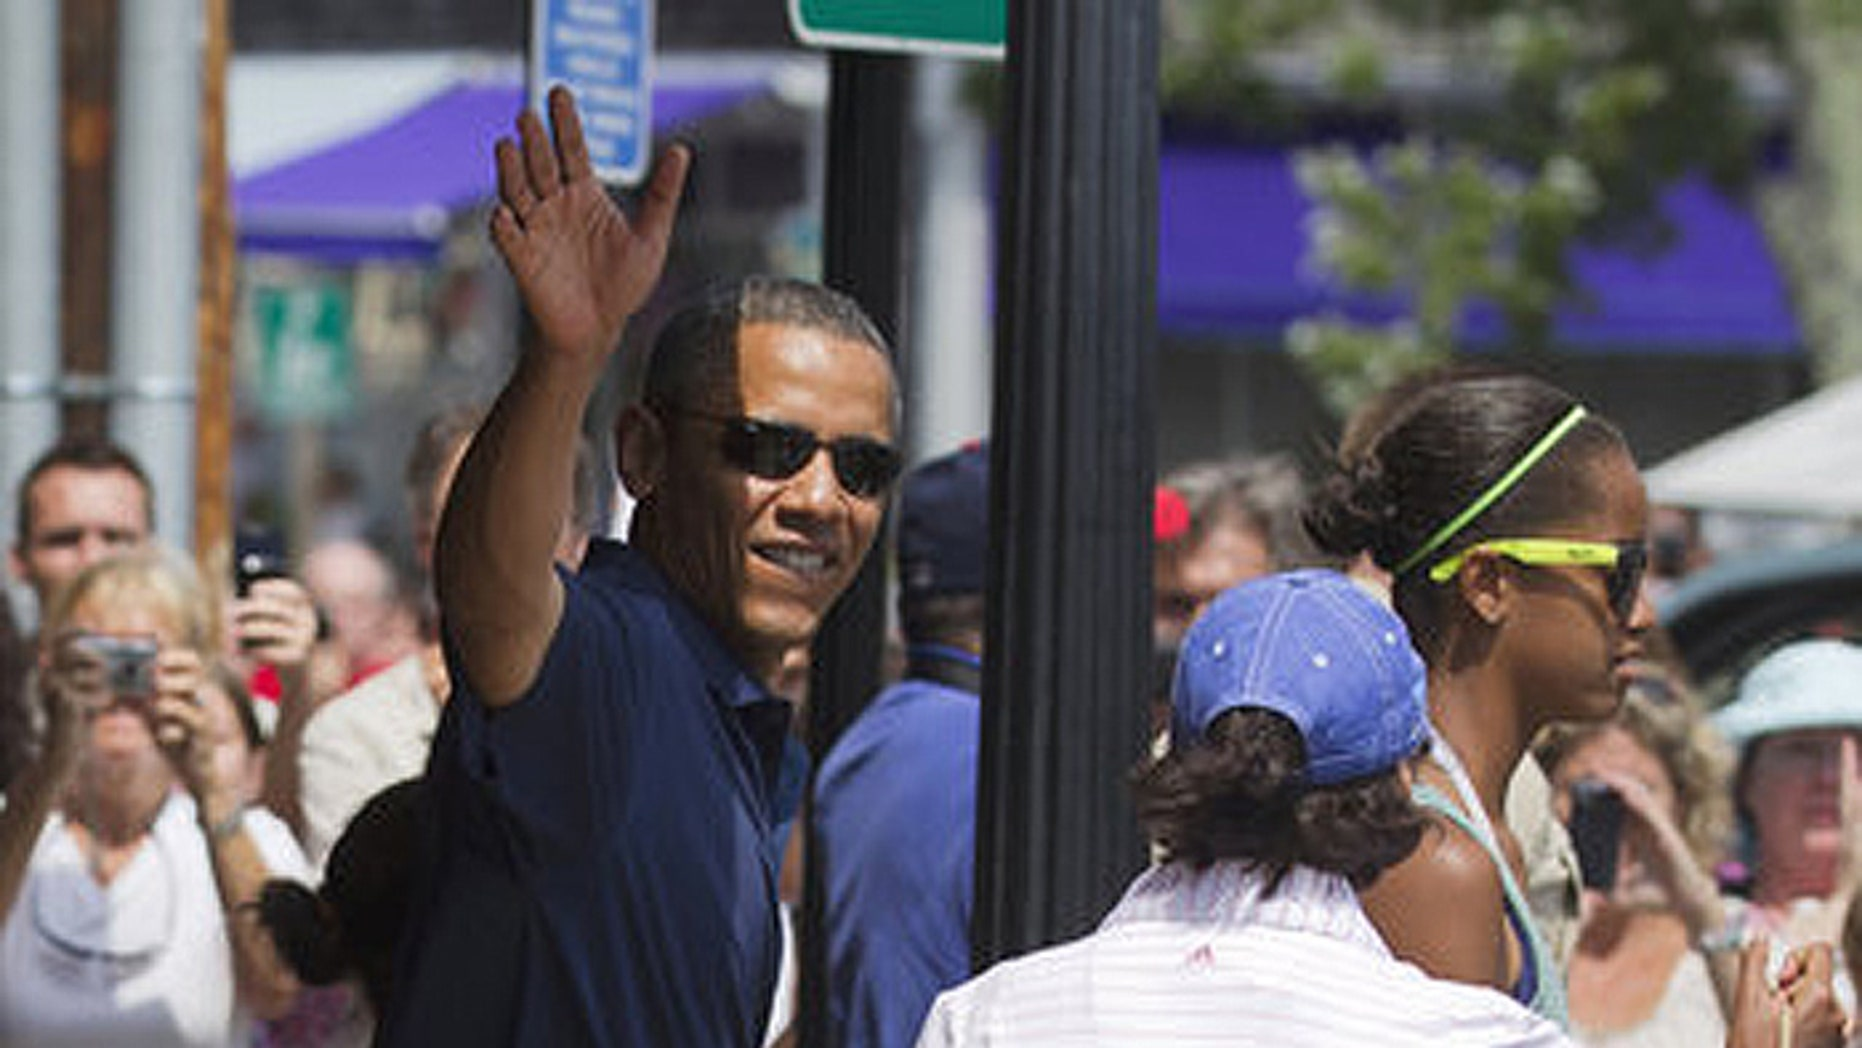 The president is a lot more popular on Martha's Vineyard than the men and women who guard him.